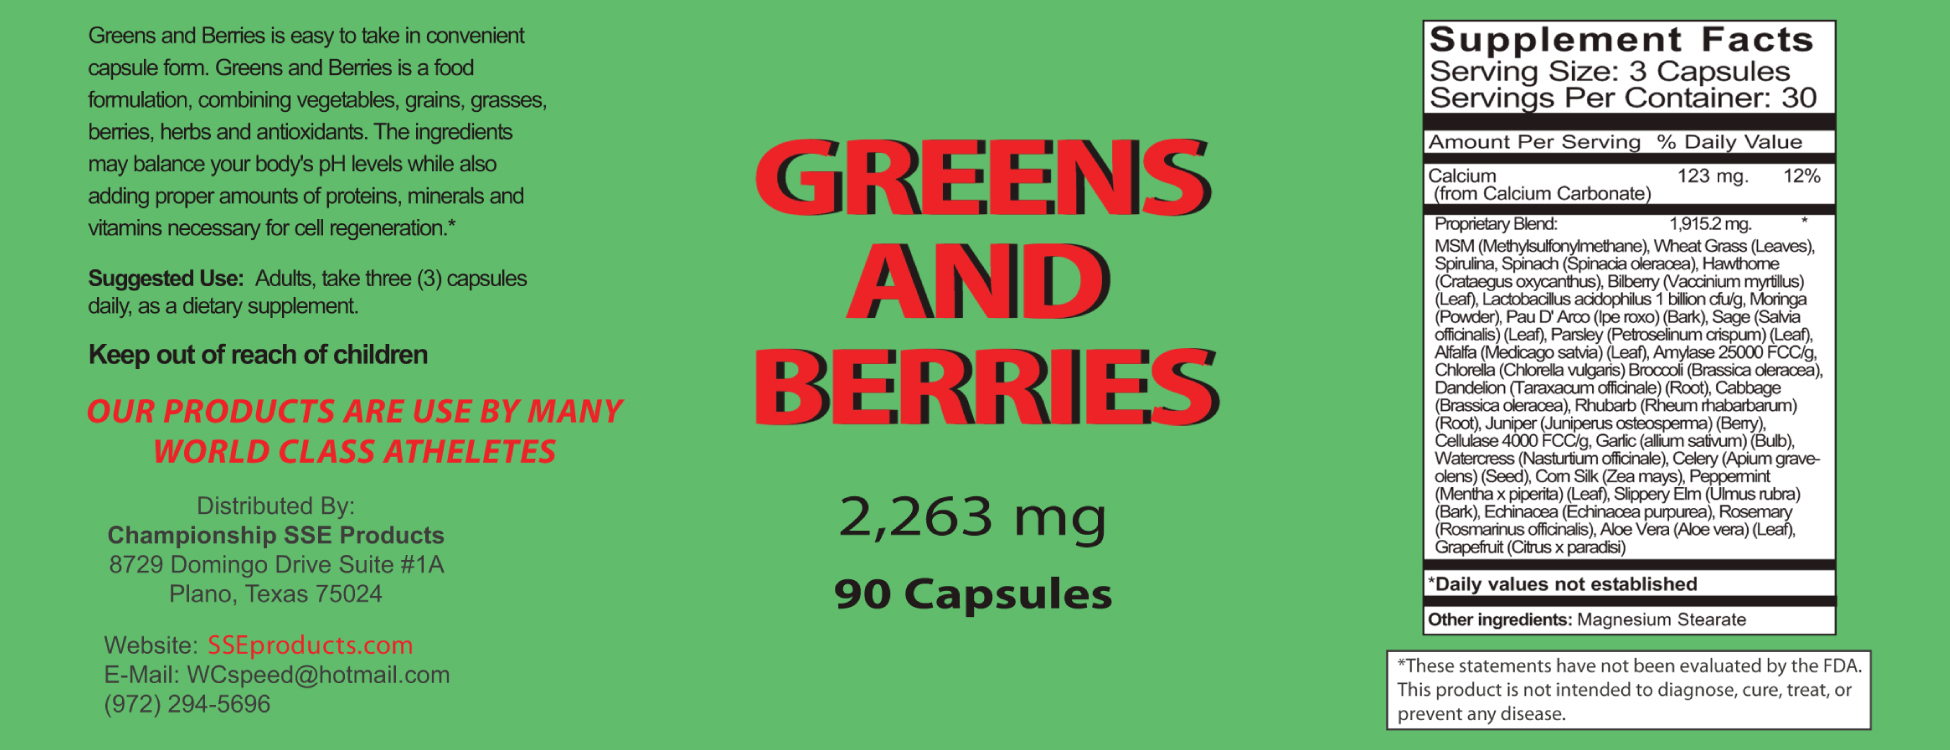 Greens Berries